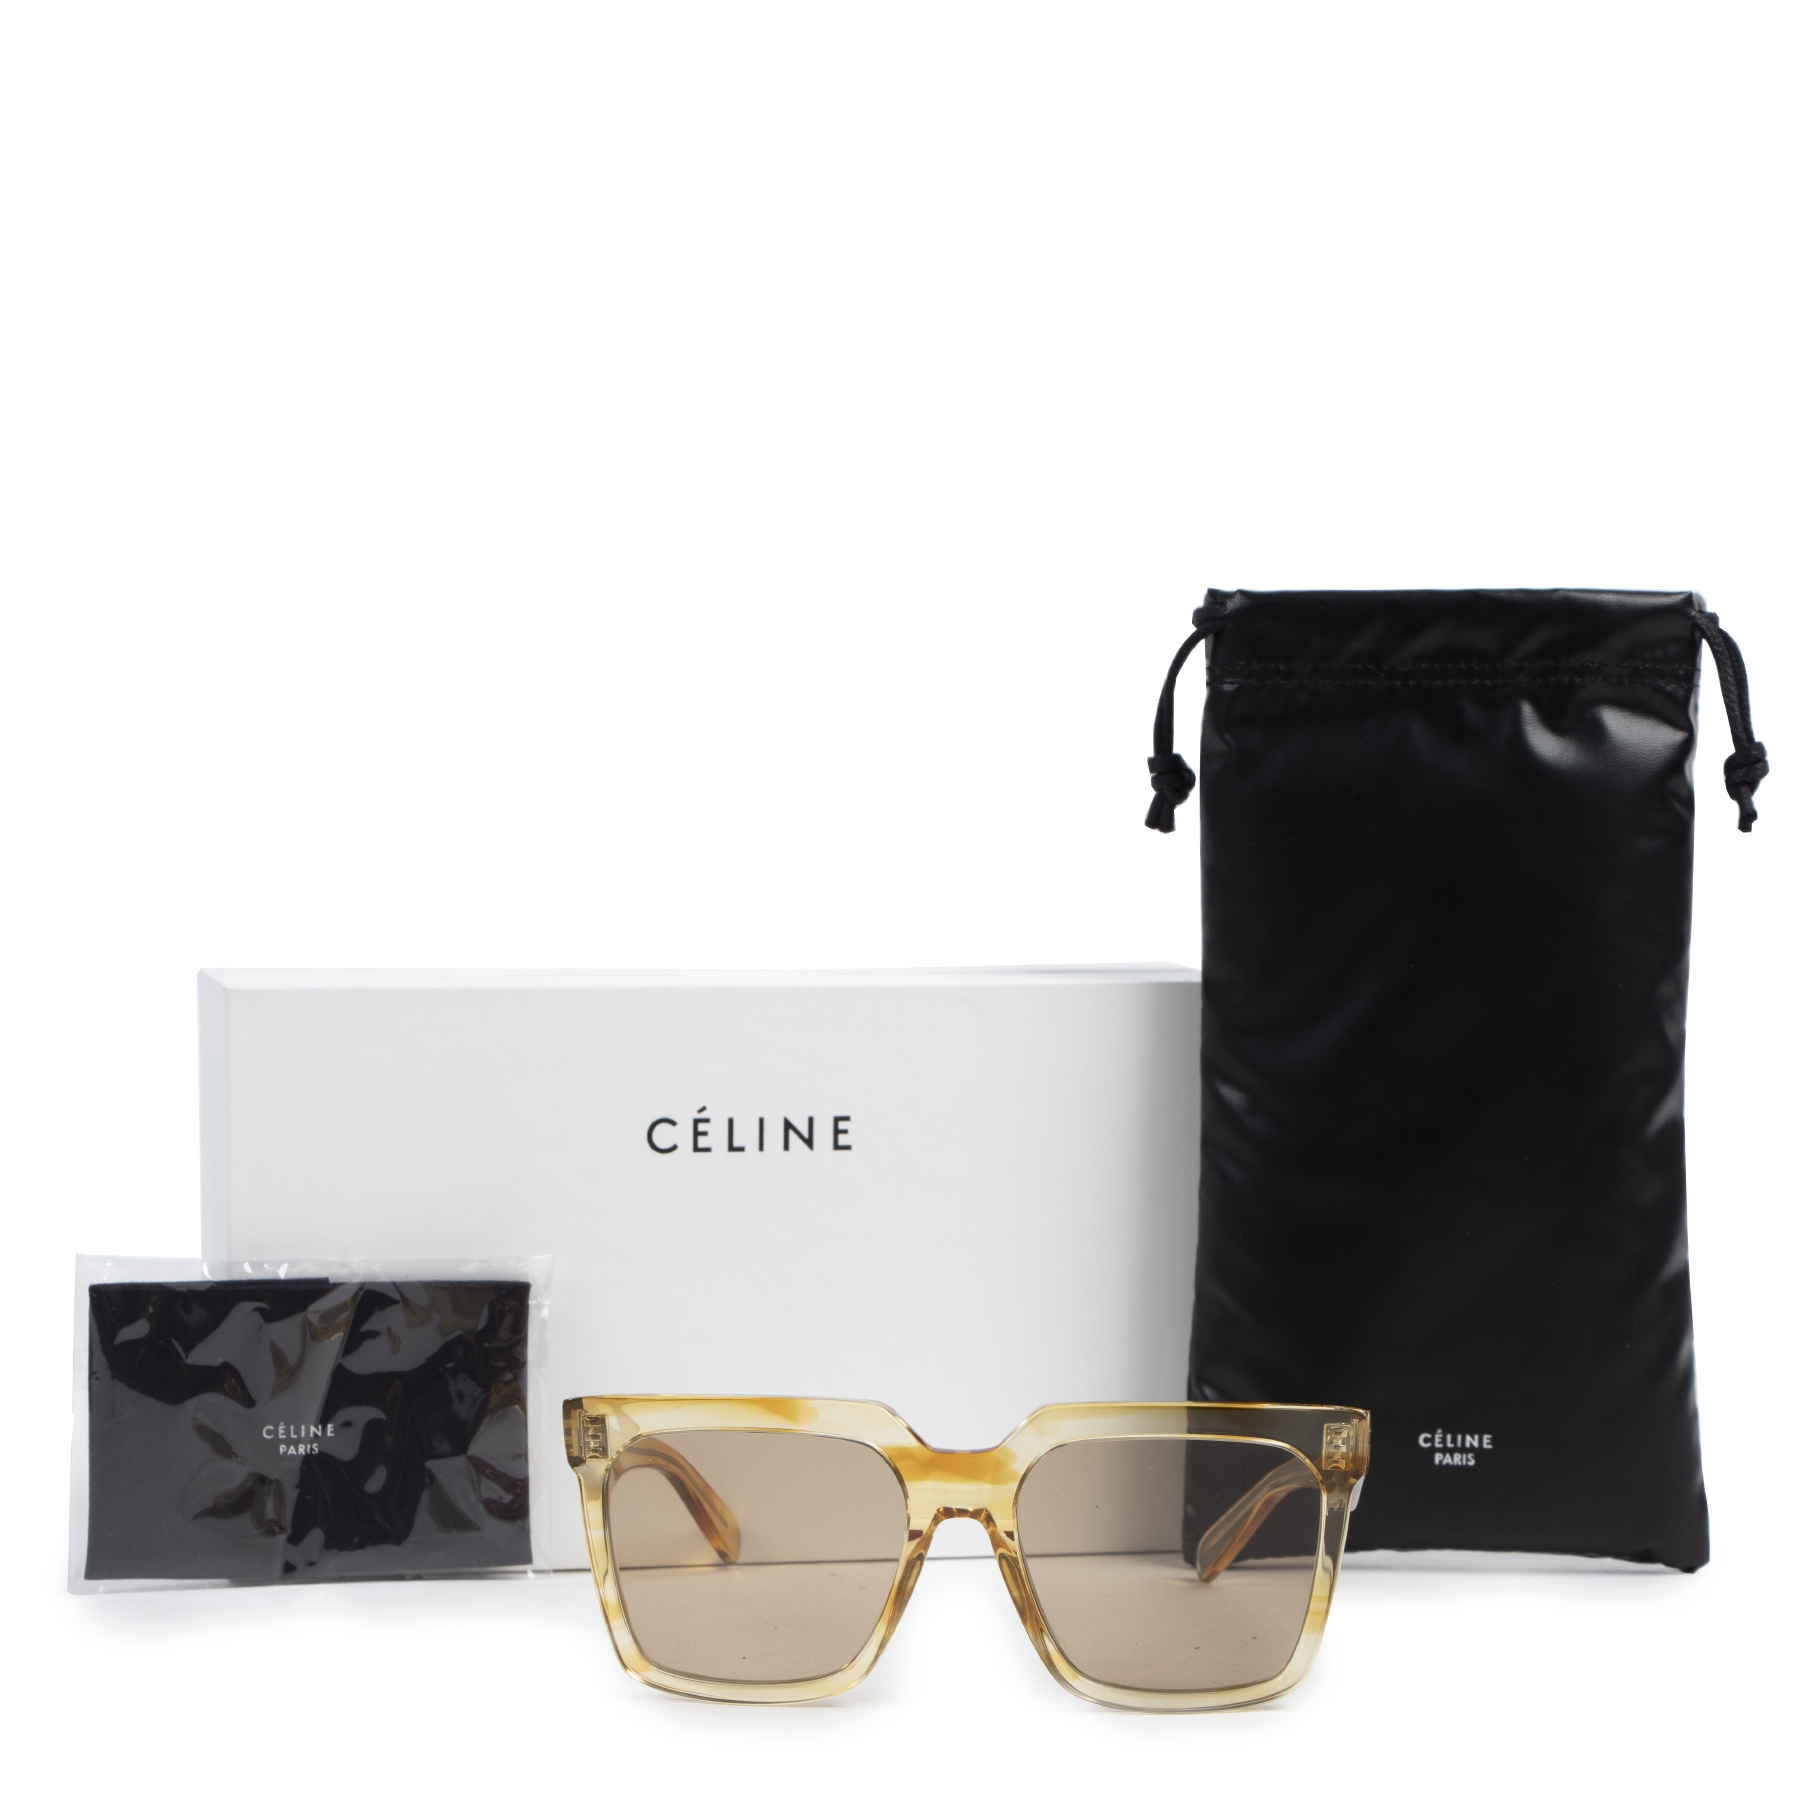 Authentic secondhand Céline Yellow Havana Striped Oversized 0055 Sunglasses designer accessories fashion luxury vintage webshop safe secure online shopping